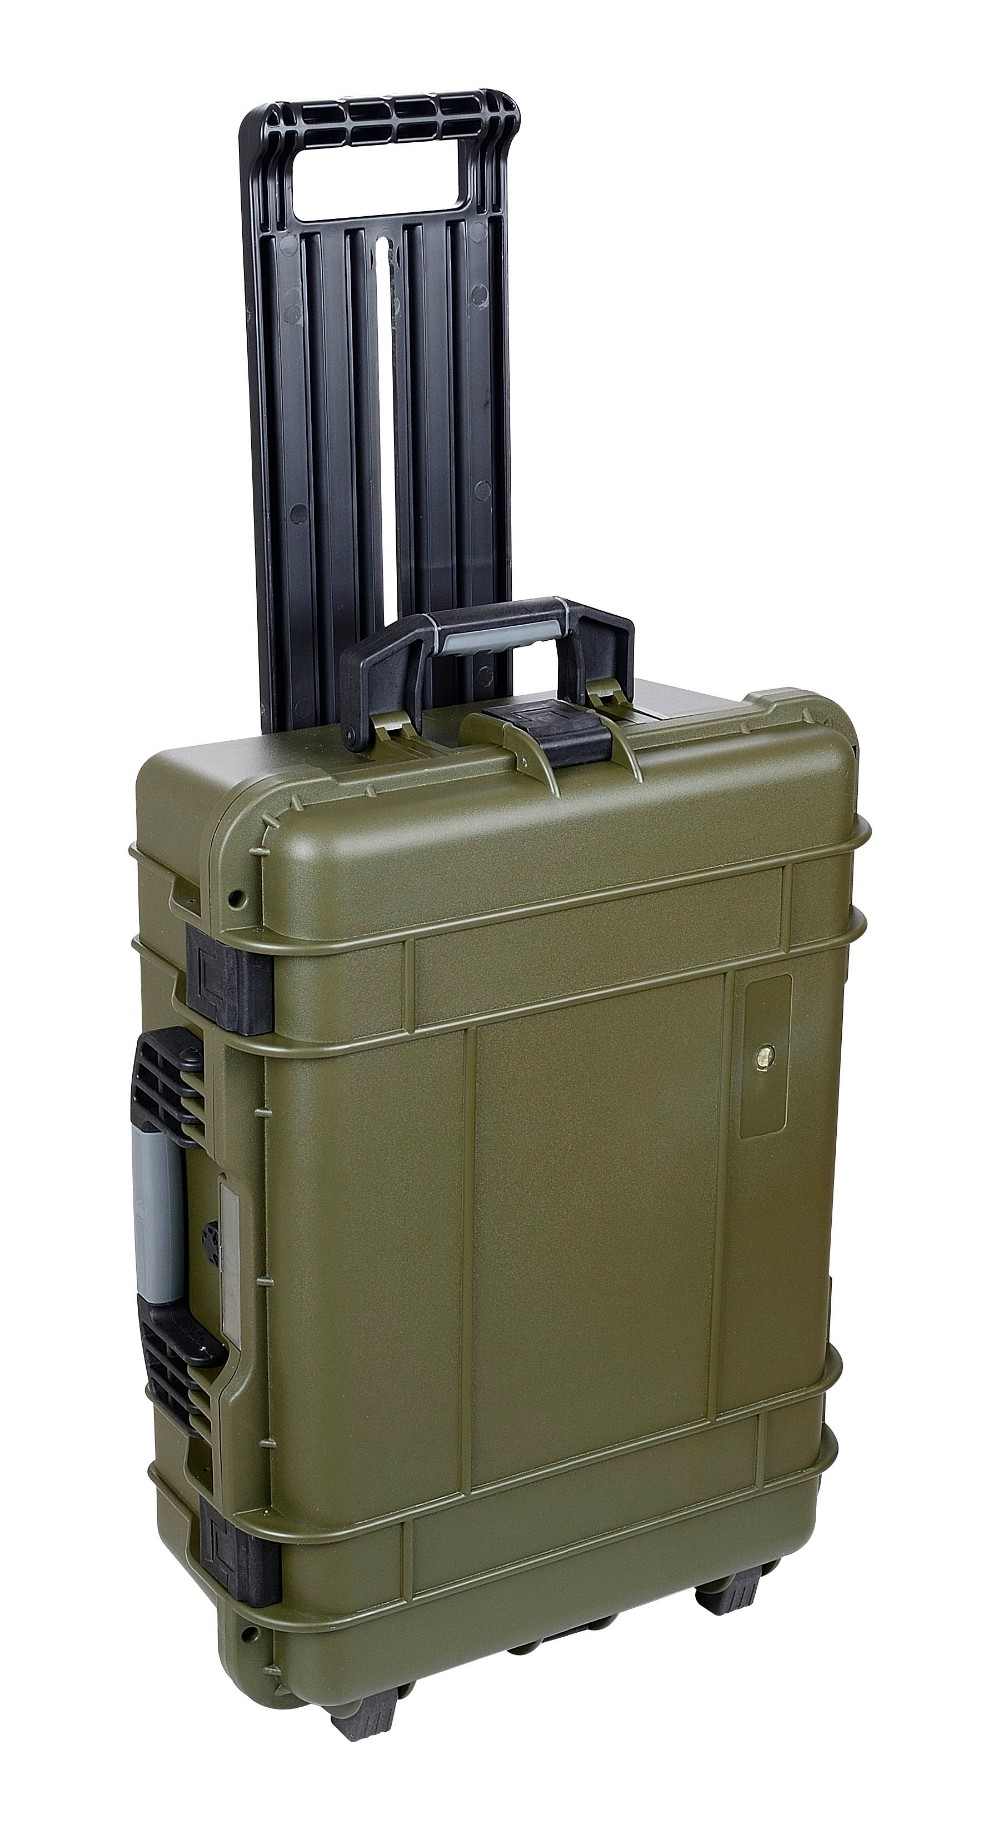 SQ5206 wheeled waterproof transport case for lightning protection device